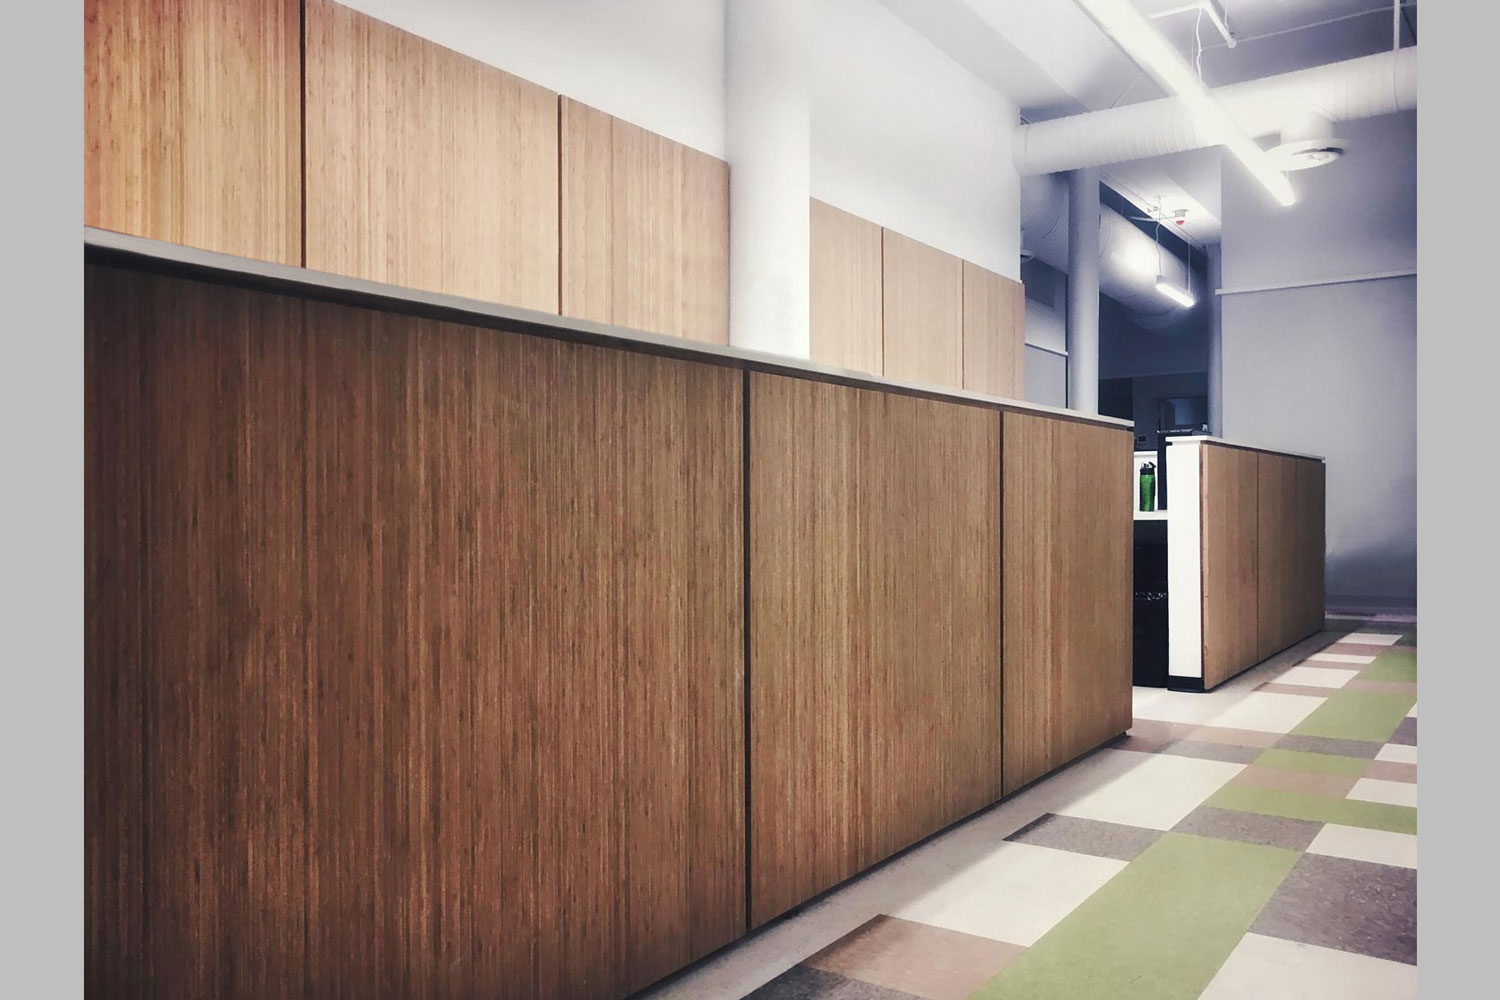 Corporate headquarters build-out for Community Counseling & Mediation. Project and photo by OCV Architects.